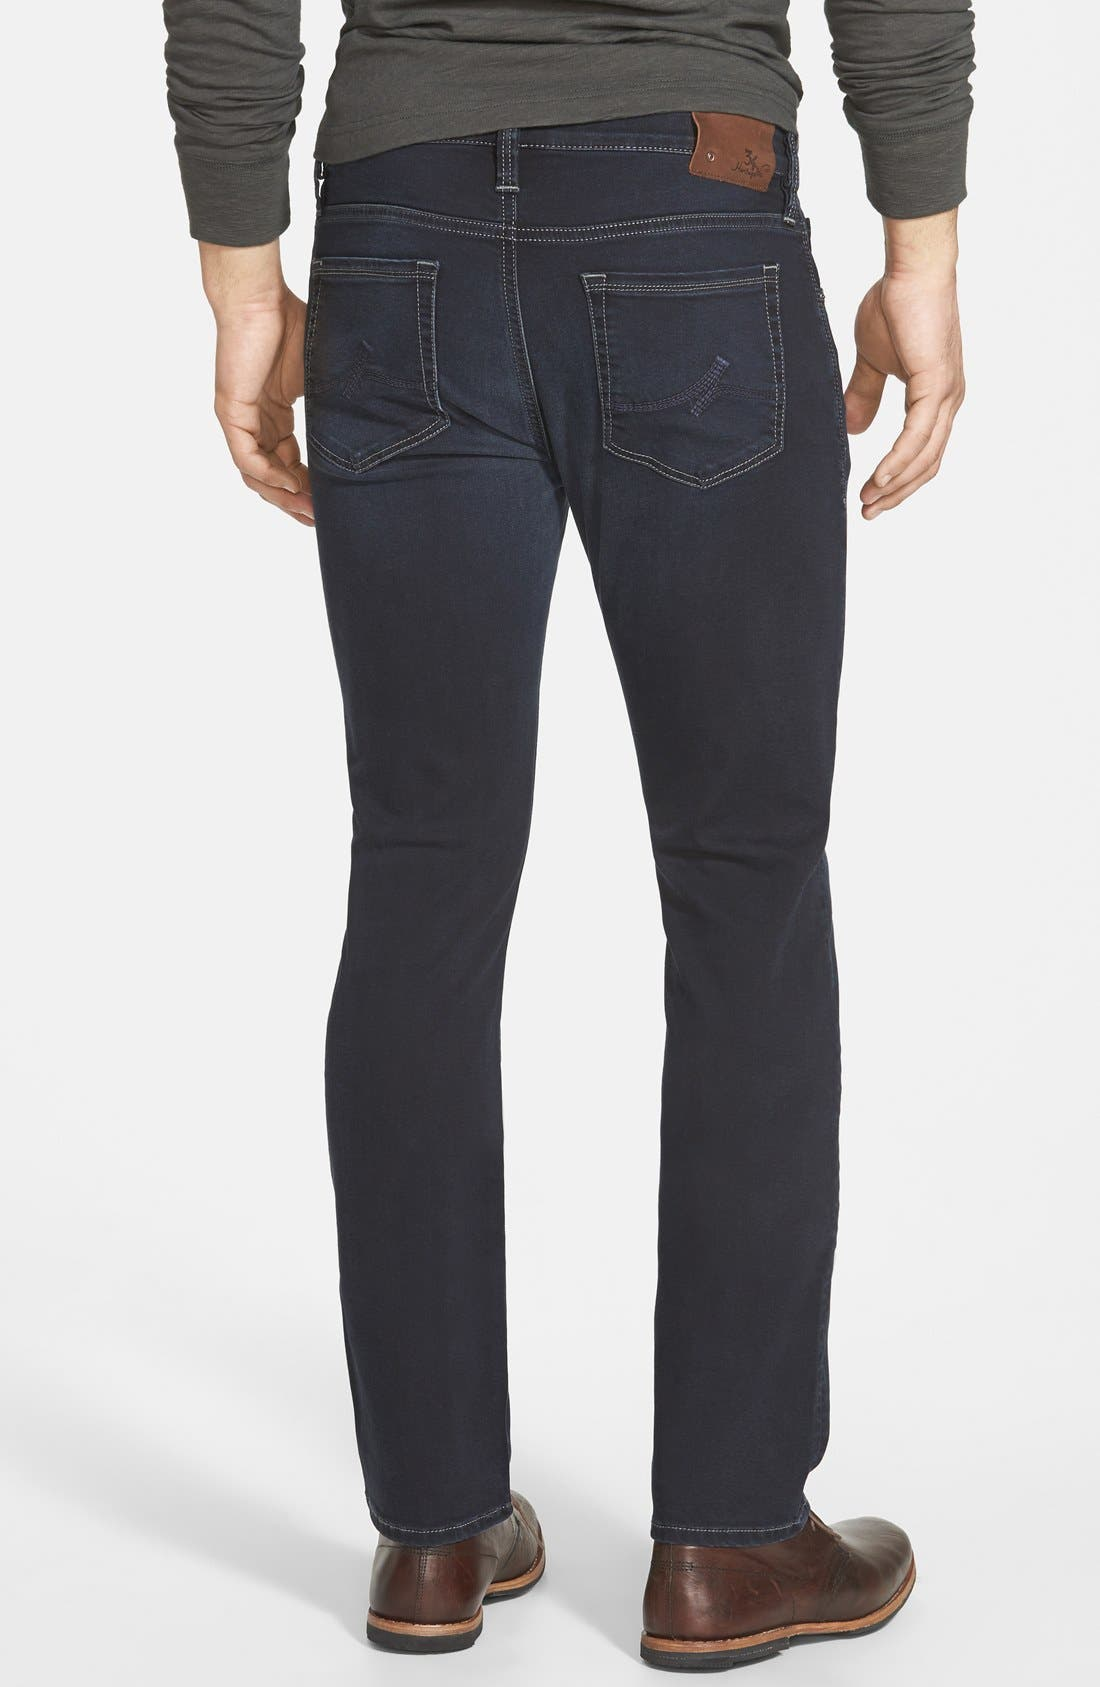 Courage Relaxed Fit Jeans,                             Alternate thumbnail 3, color,                             MIDNIGHT AUSTIN